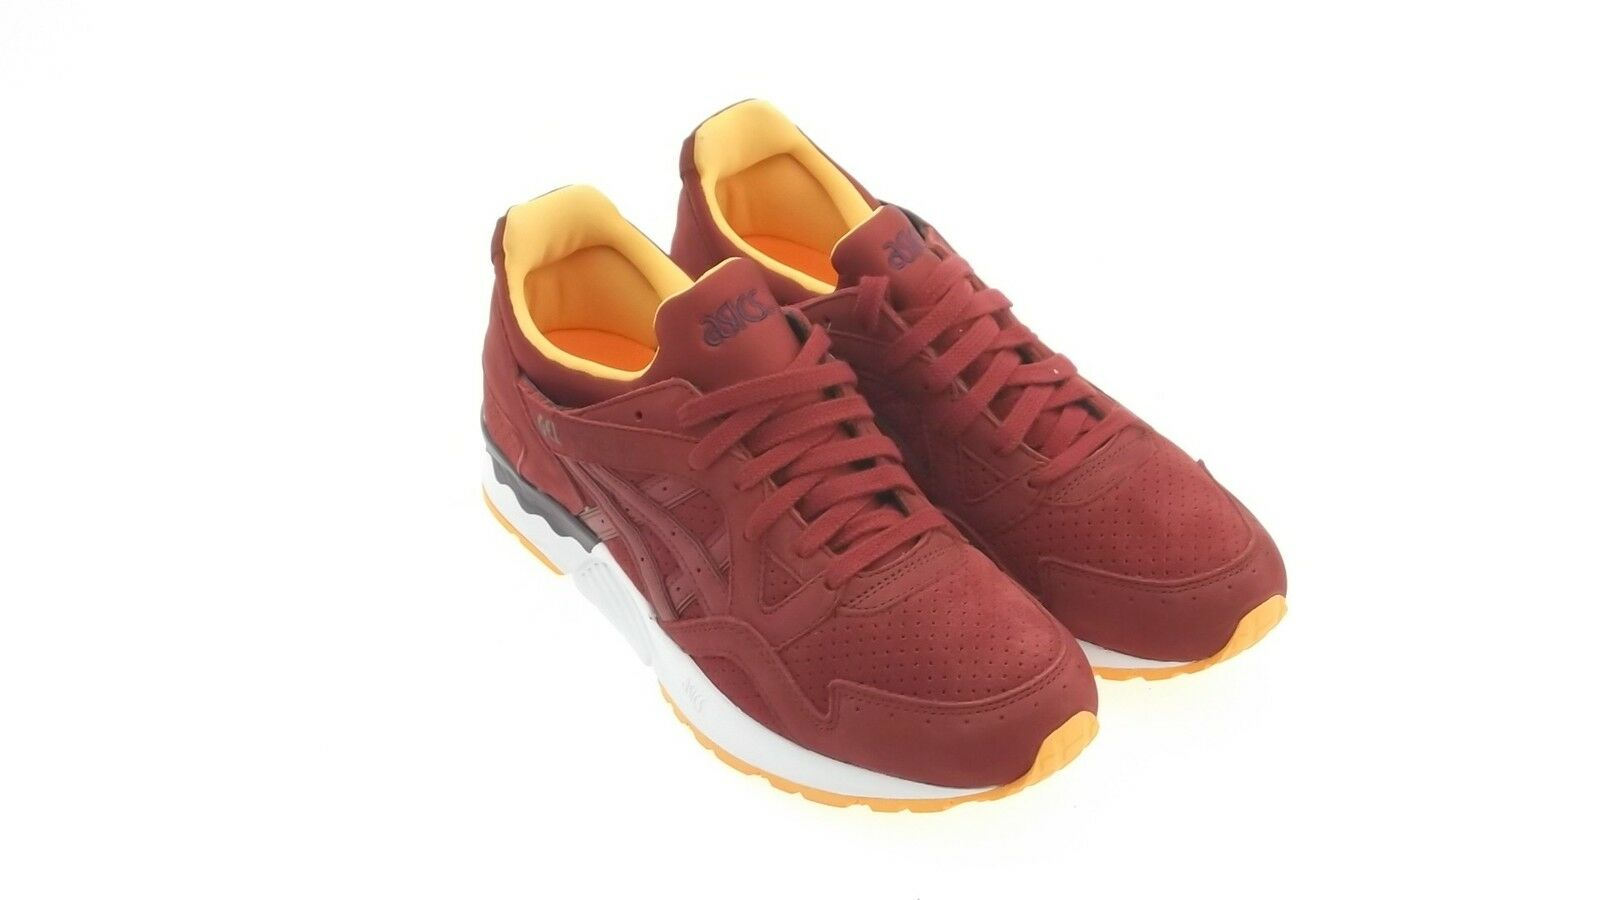 Asics Men Gel-Lyte Gel-Lyte Men V burgundy H5D2L-2525 1c596c